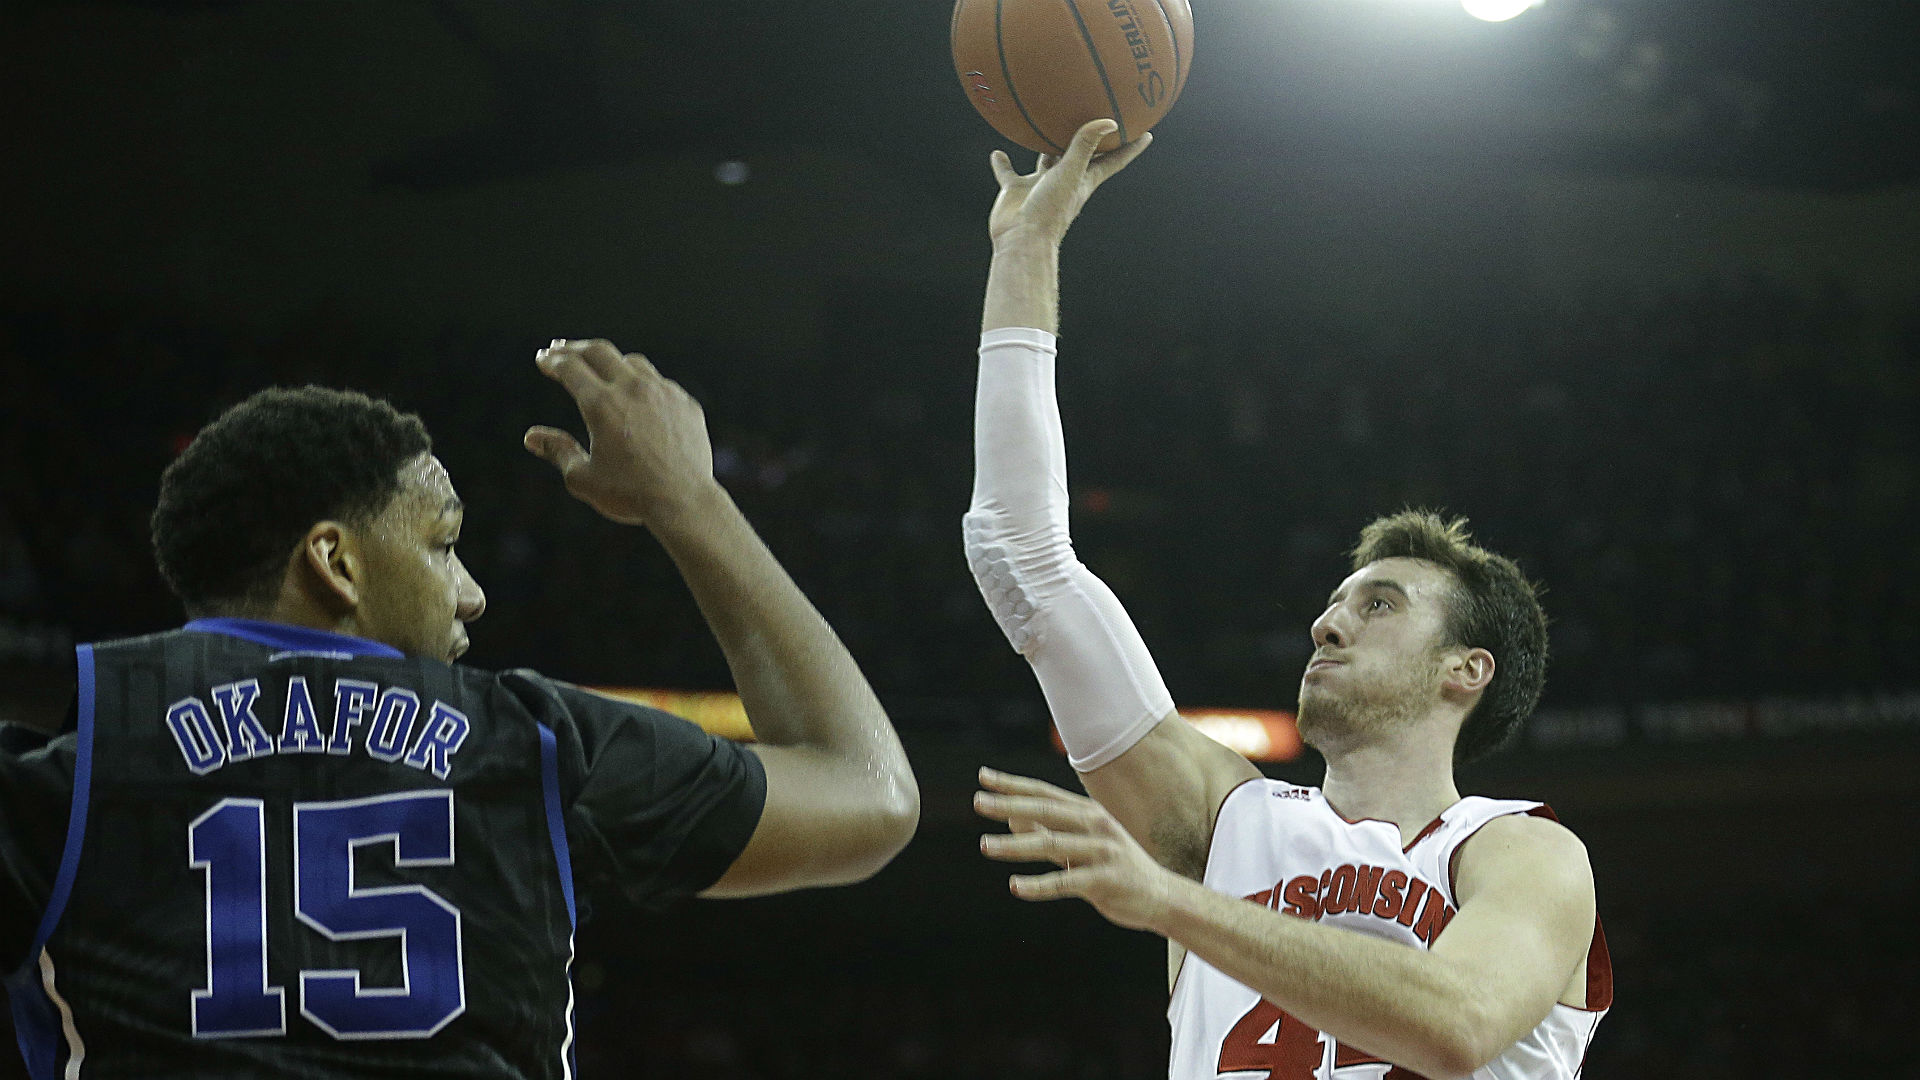 Duke vs. Wisconsin betting lines and pick – Small spread in national title game